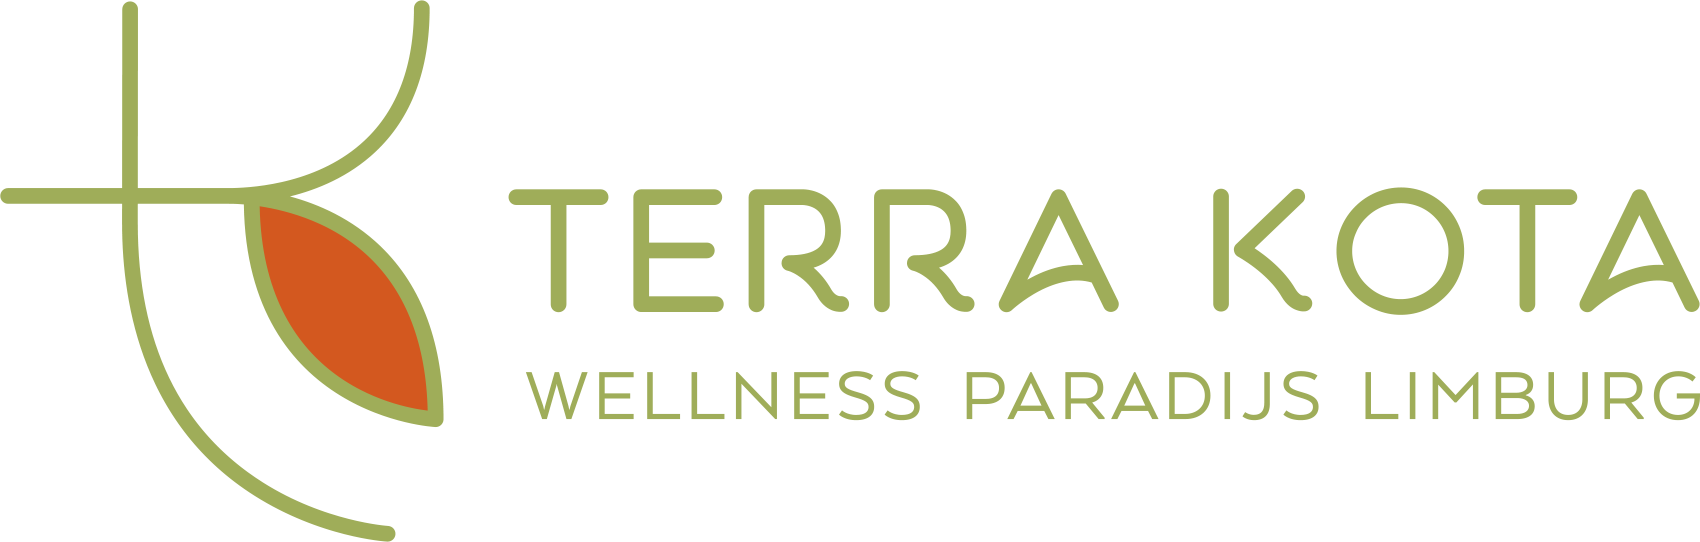 logo TerraKota Wellness